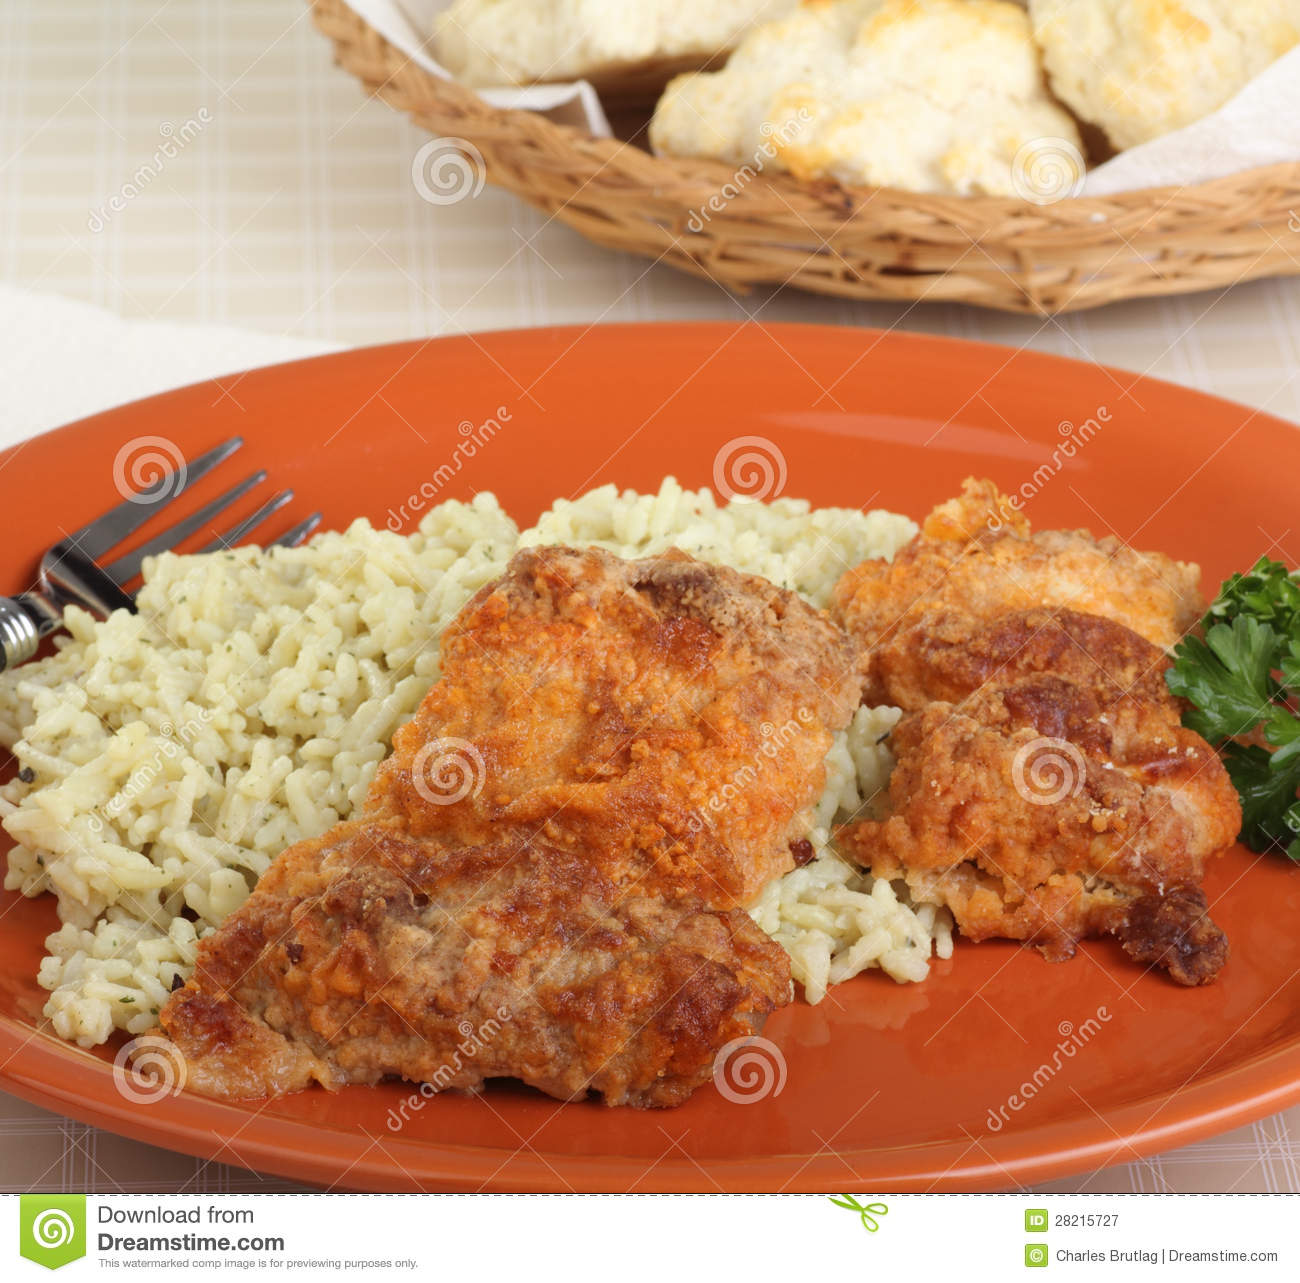 Baked Chicken Dinner Royalty Free Stock Photography - Image: 28215727